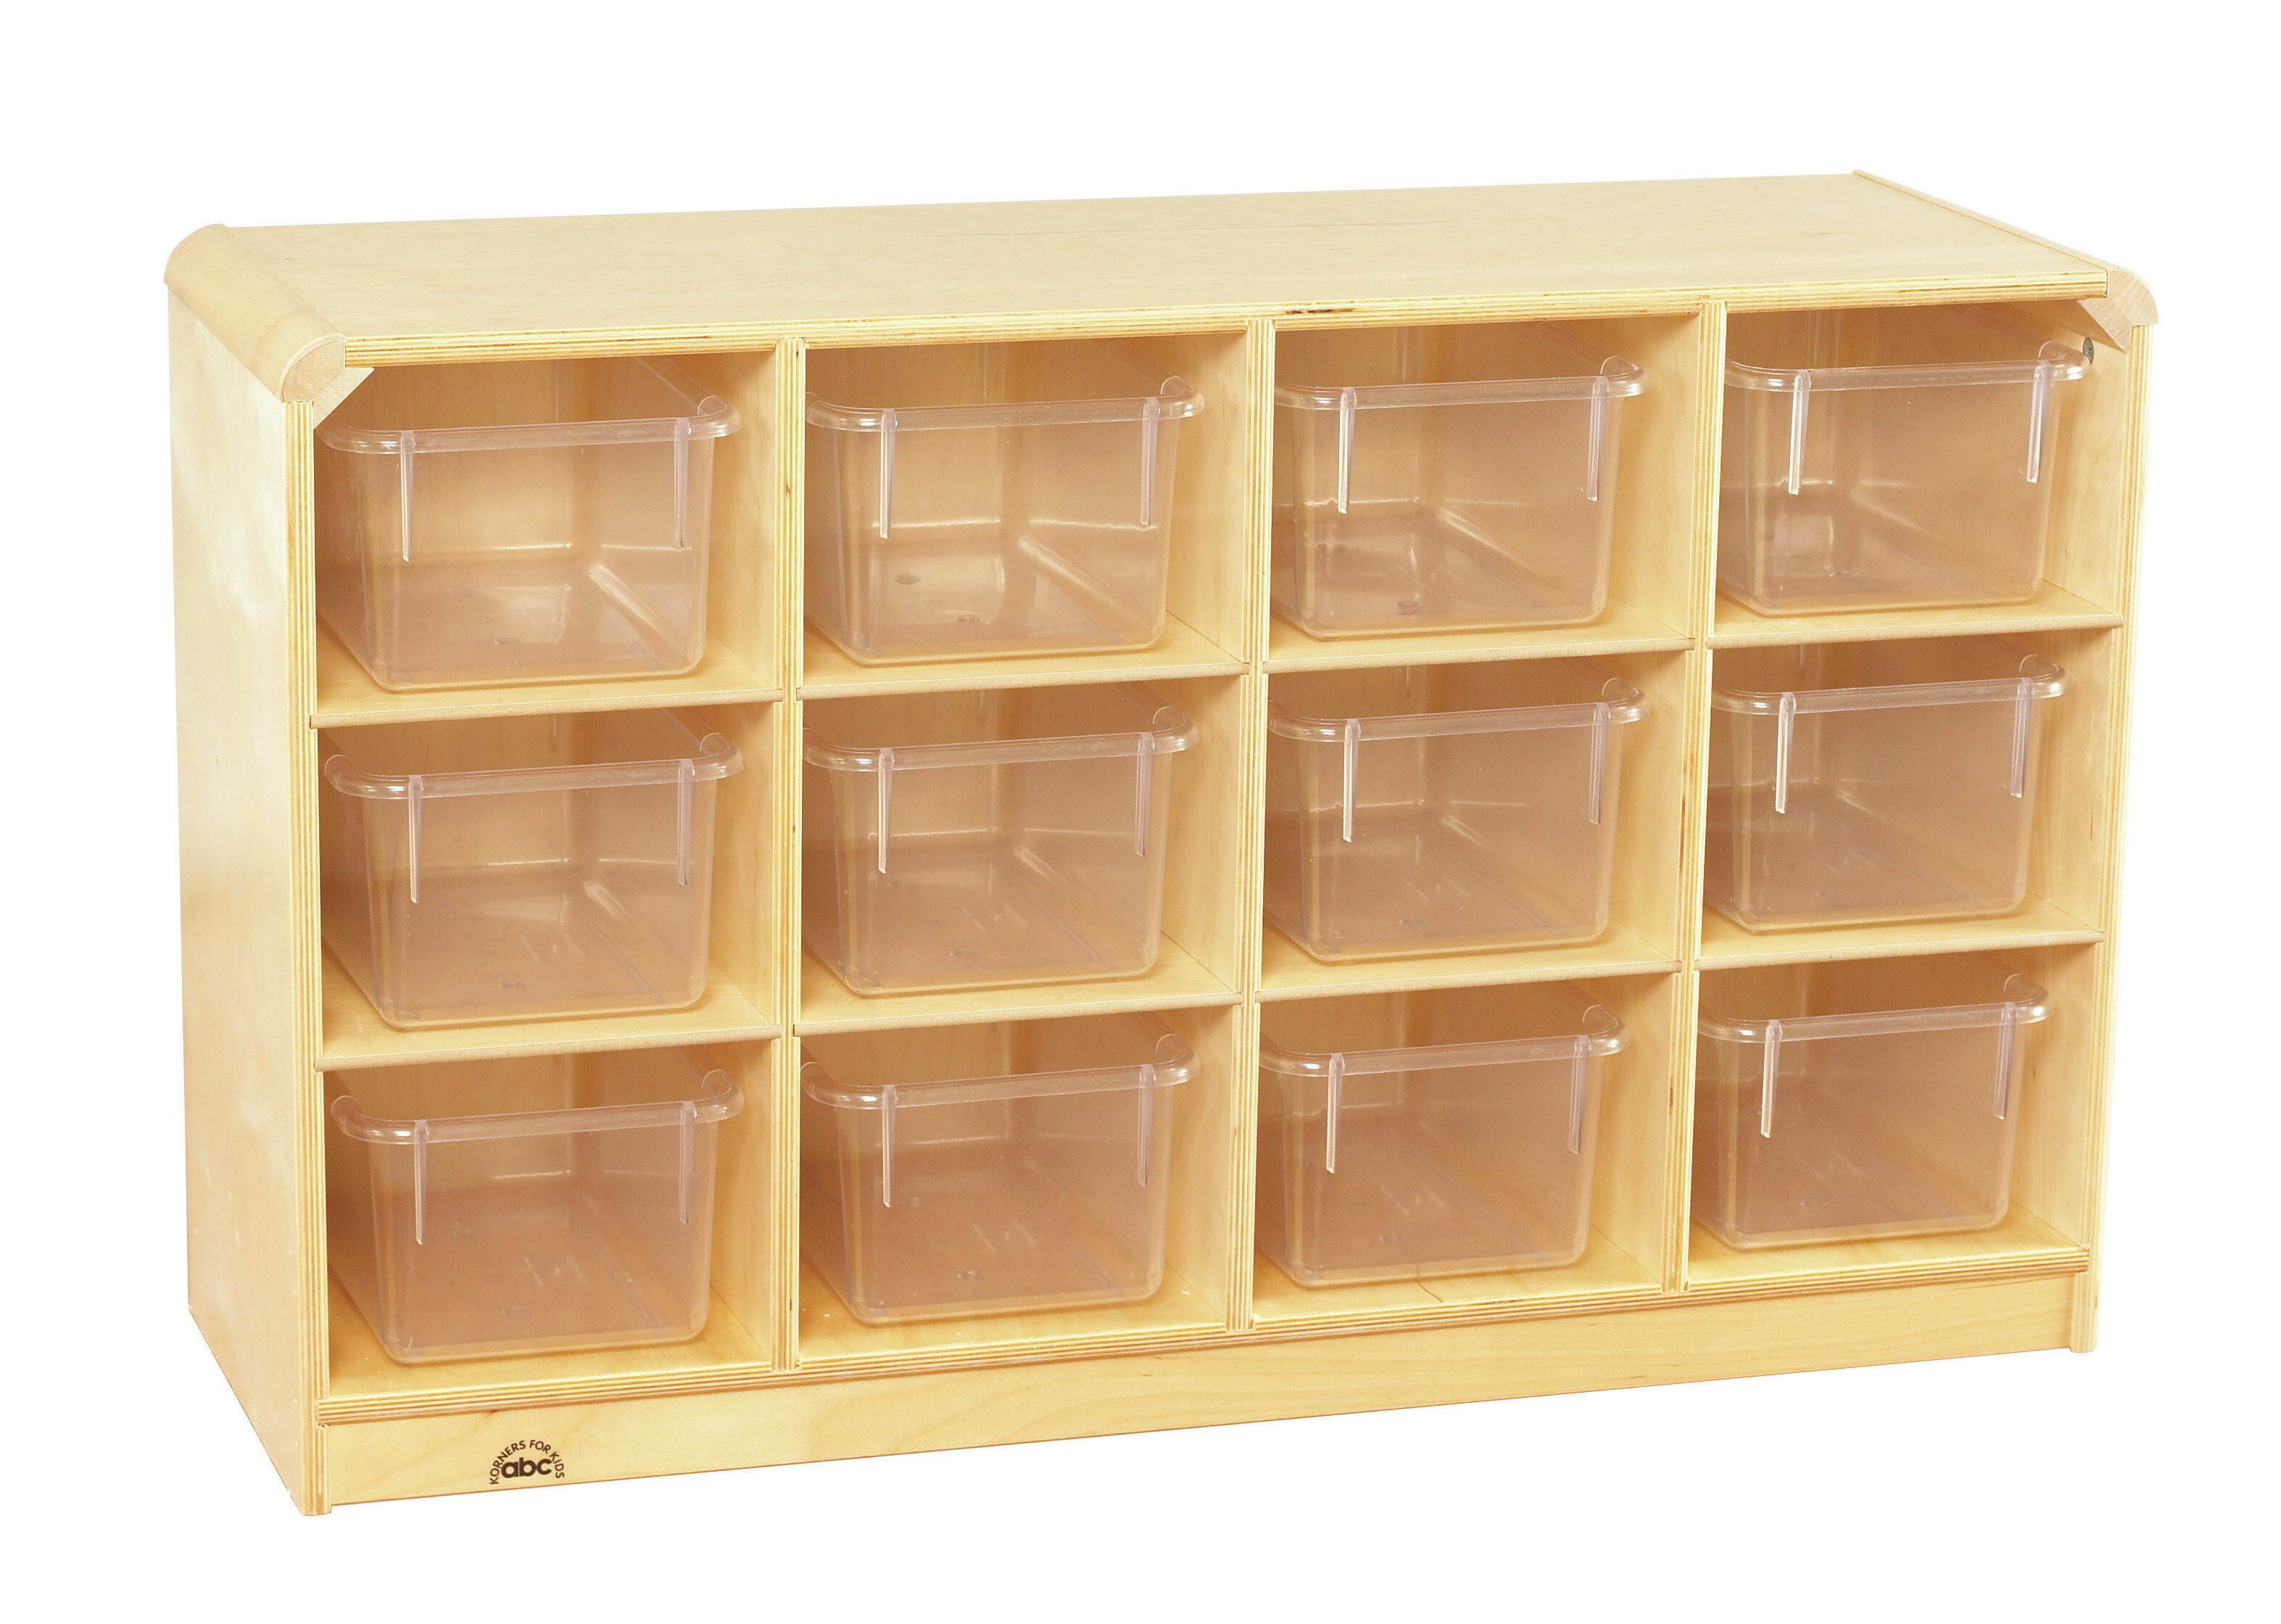 Childcraft Korners For Kids Toddler Mobile 12 Compartment Cubby With Trays Wayfair